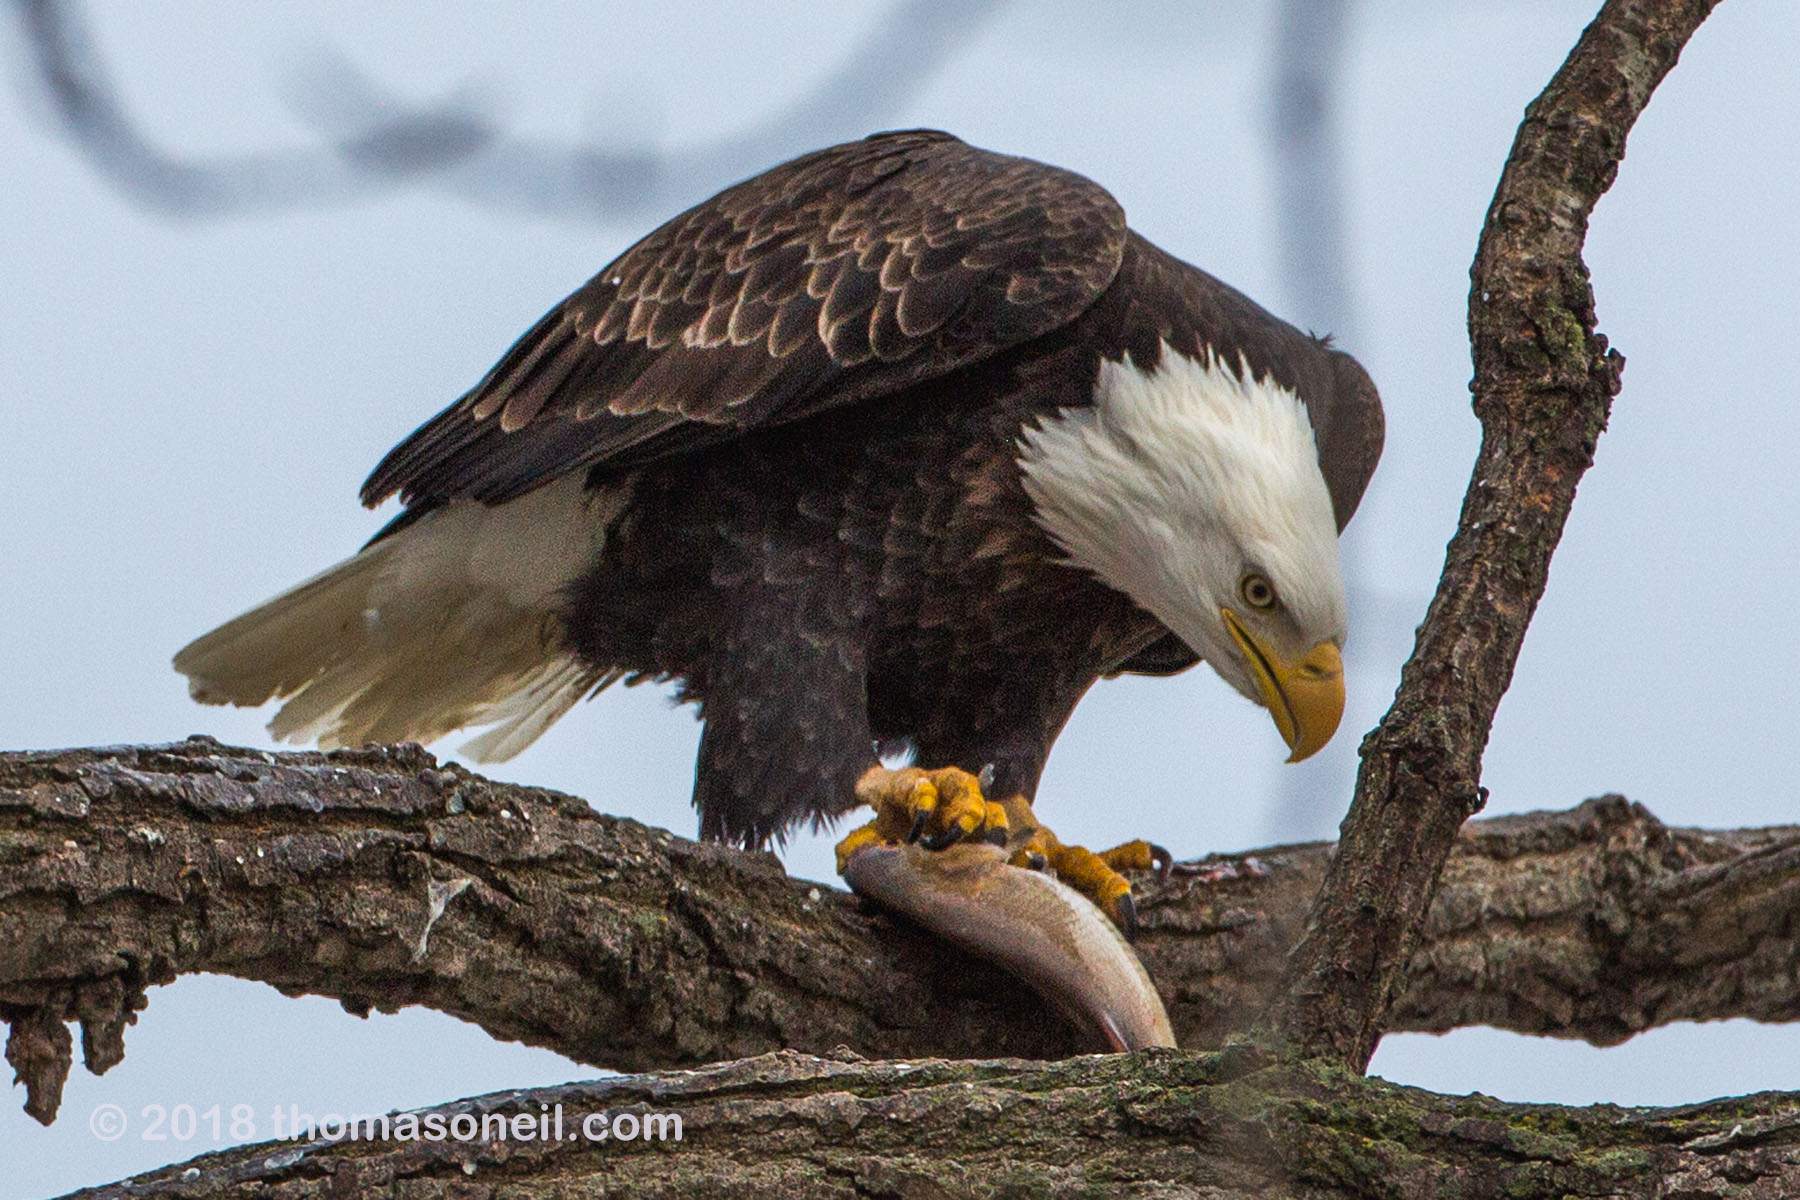 Bald eagle eating fish, 3 of 7 in sequence, Keokuk, Iowa, January 2018.  Click for next photo.